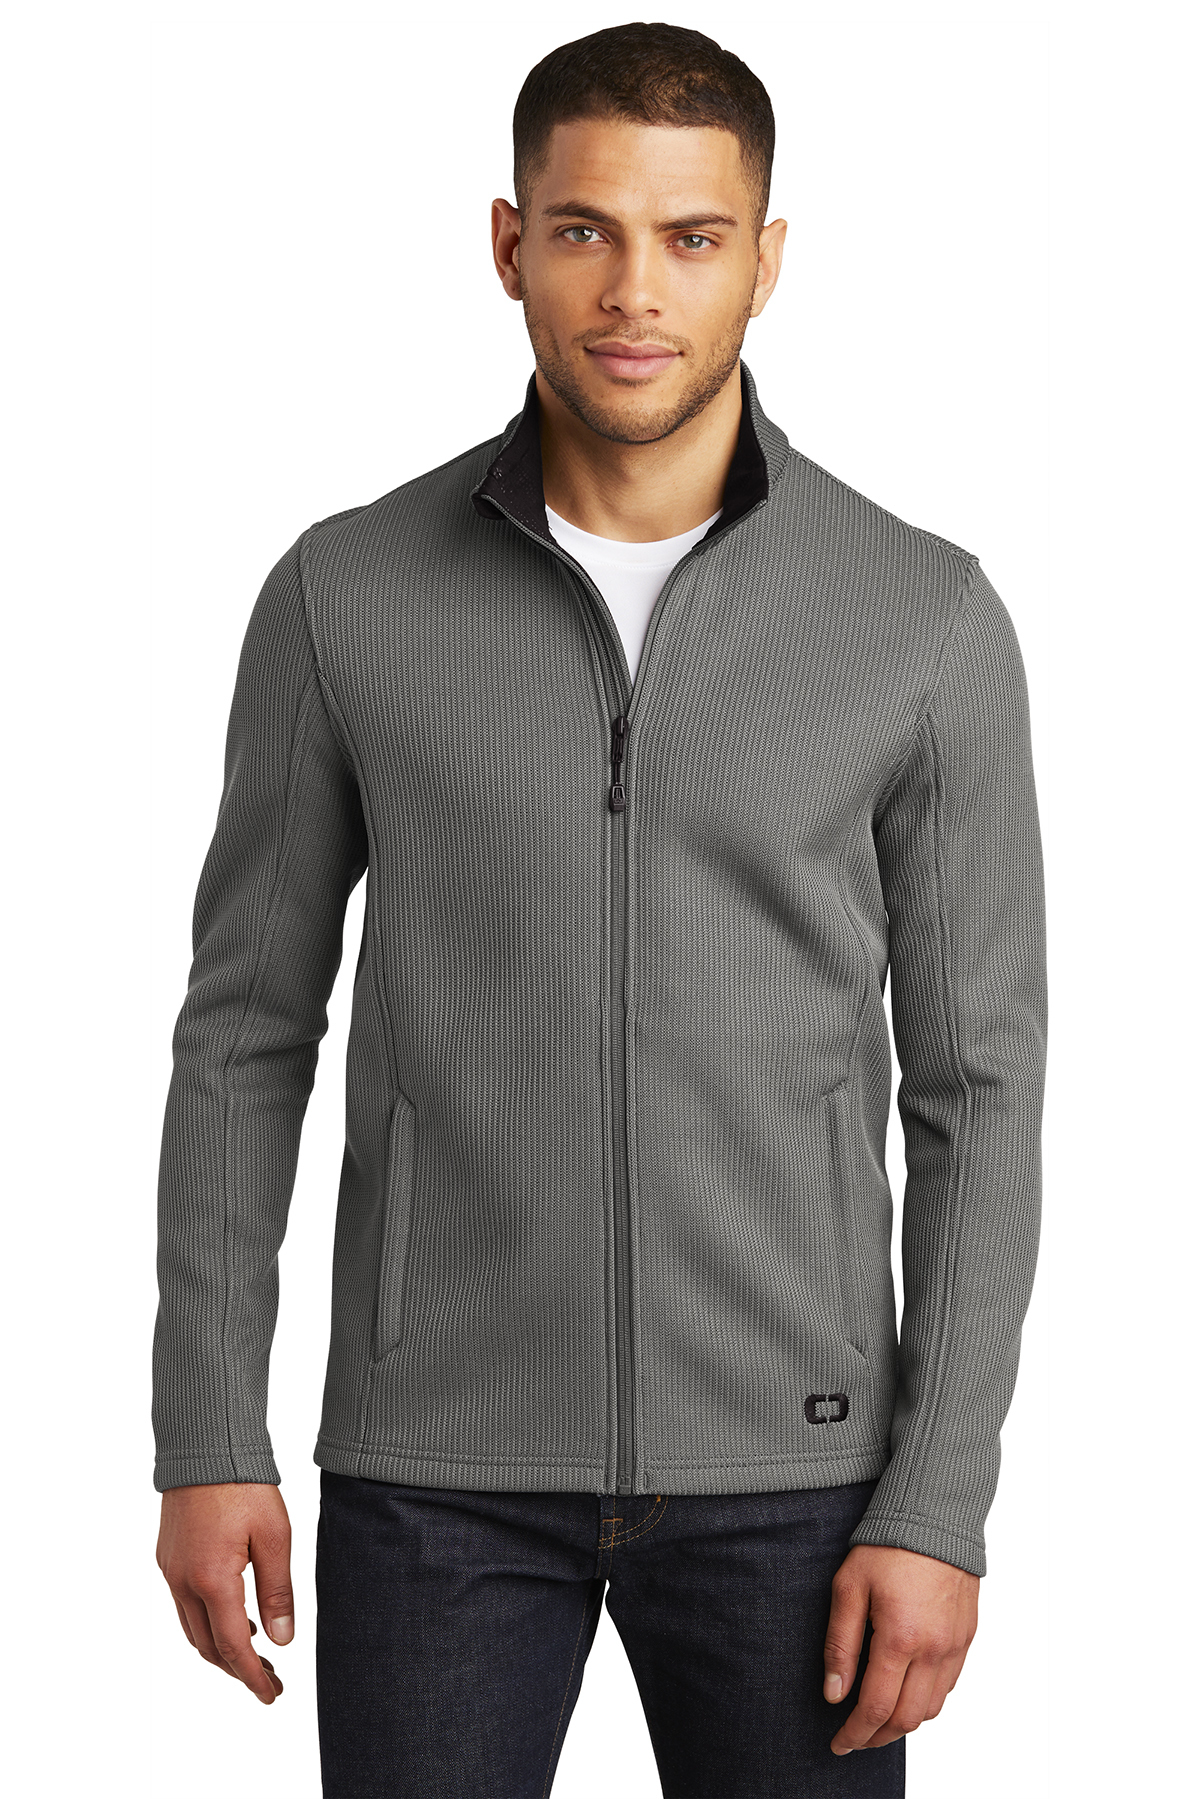 OGIO OG727 - Men's Grit Fleece Jacket